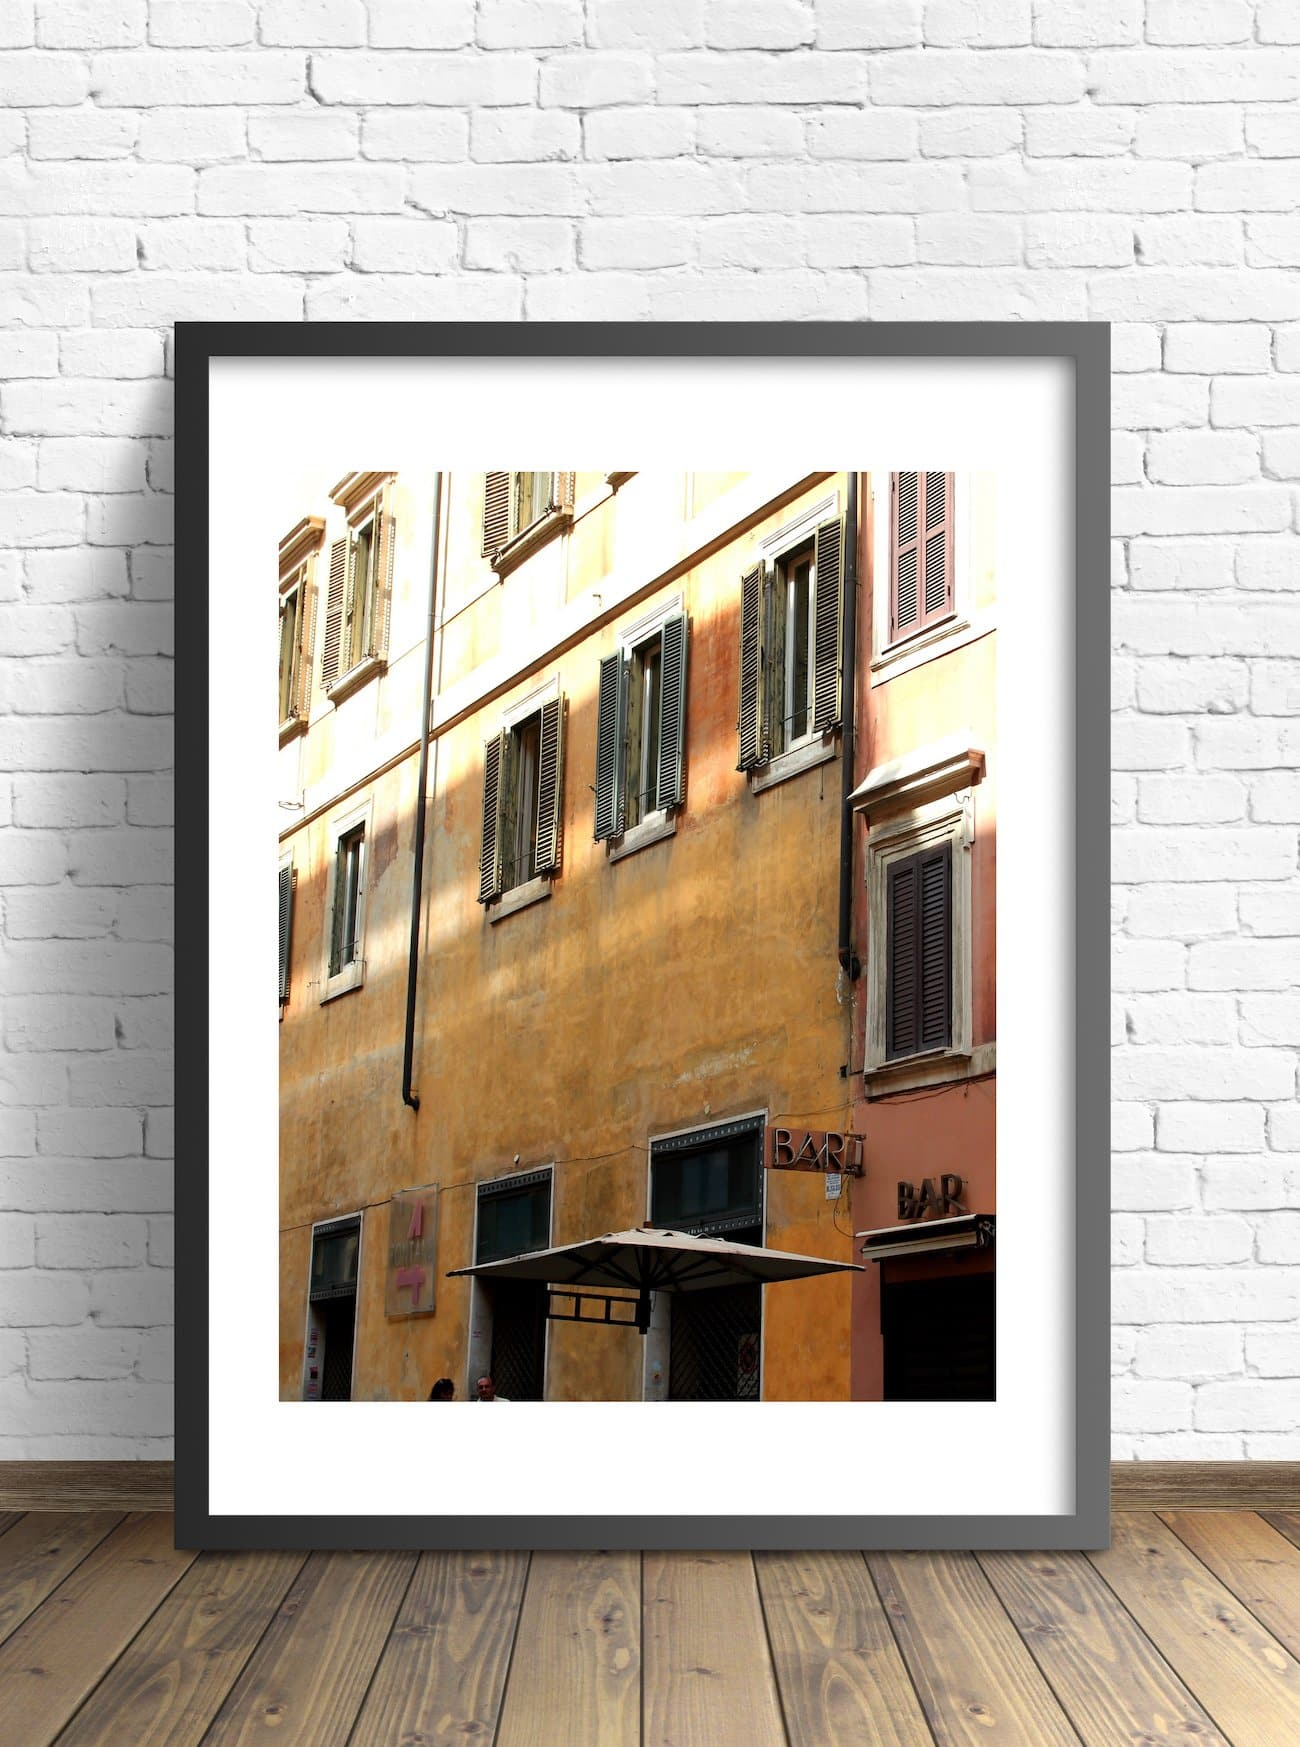 Rome - Lively Bay - Posters - Livelybay.com